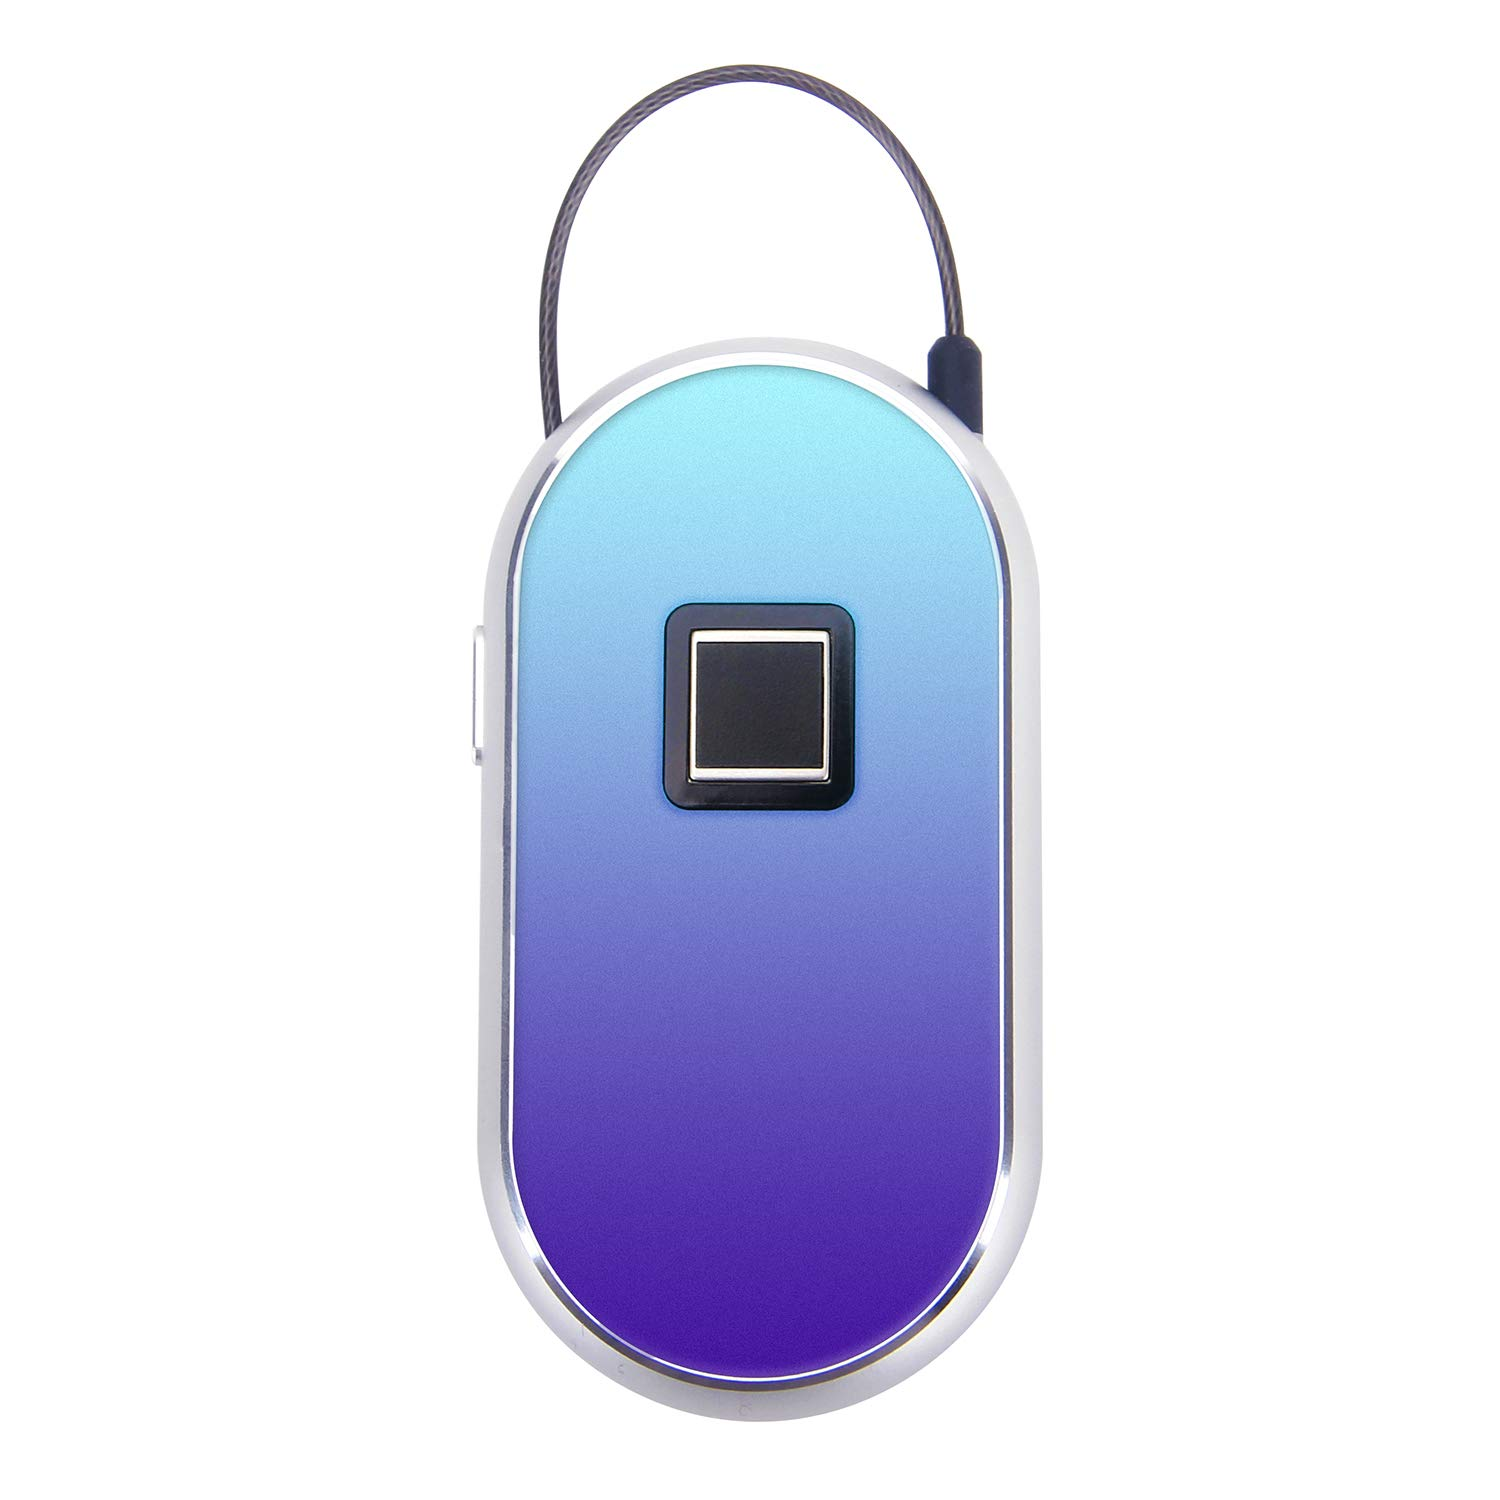 b2b1d526c6c8 ROYAL DEFENDER Fingerprint Lock, Padlock Security Anti-theft Alarm & Strong  Steel Cable For Luggage, Cabinet, Suitcase, Backpack, Gym, Bike, ...